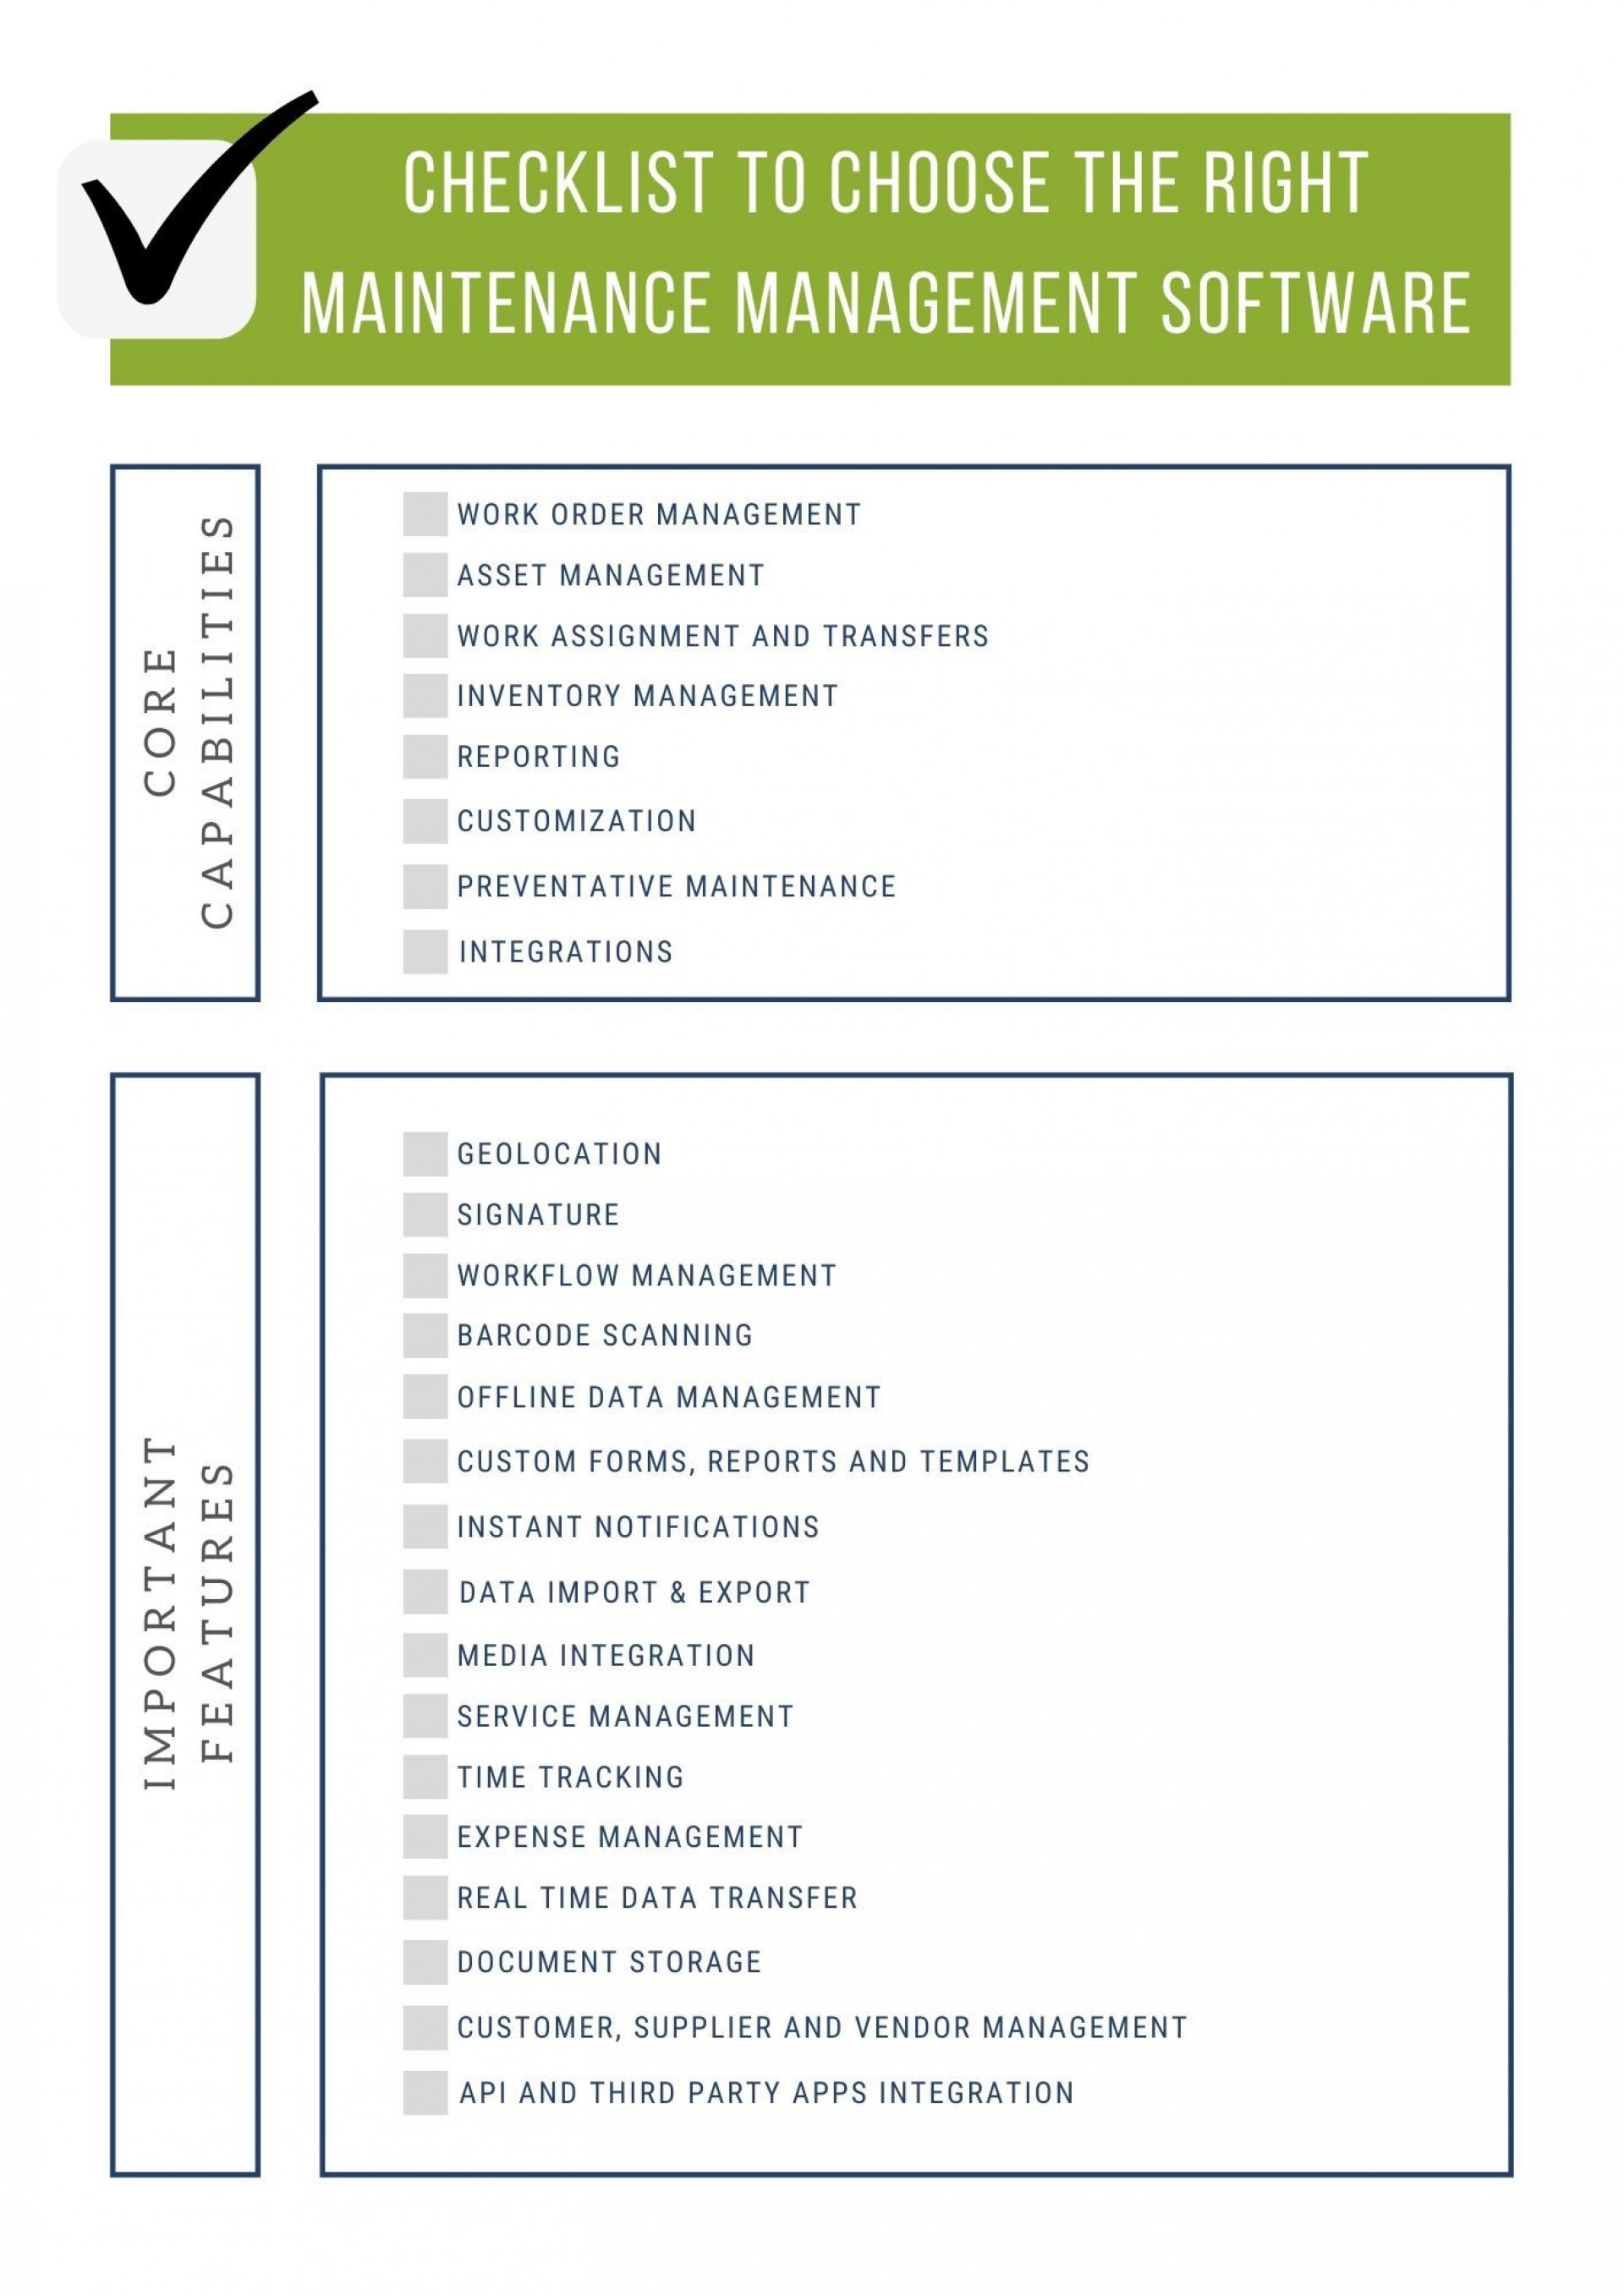 005 Unusual Property Management Maintenance Checklist Template Example  Free1920